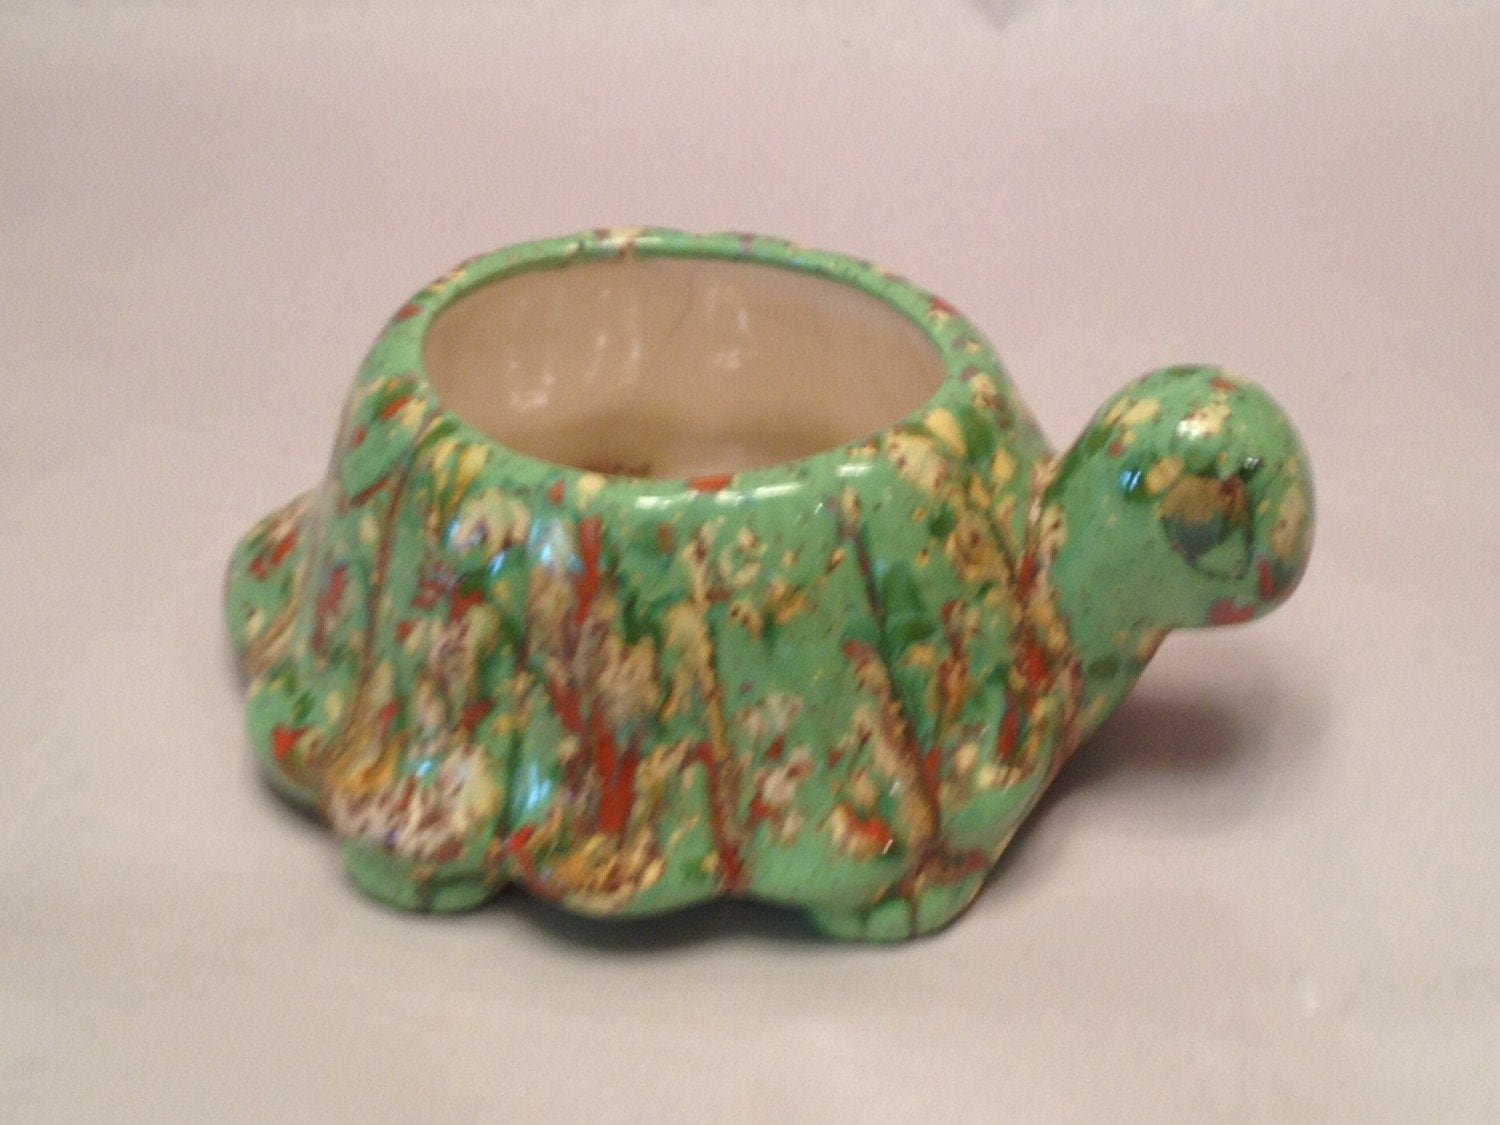 Vintage Handmade Ceramic Turtle Planter From The 70s